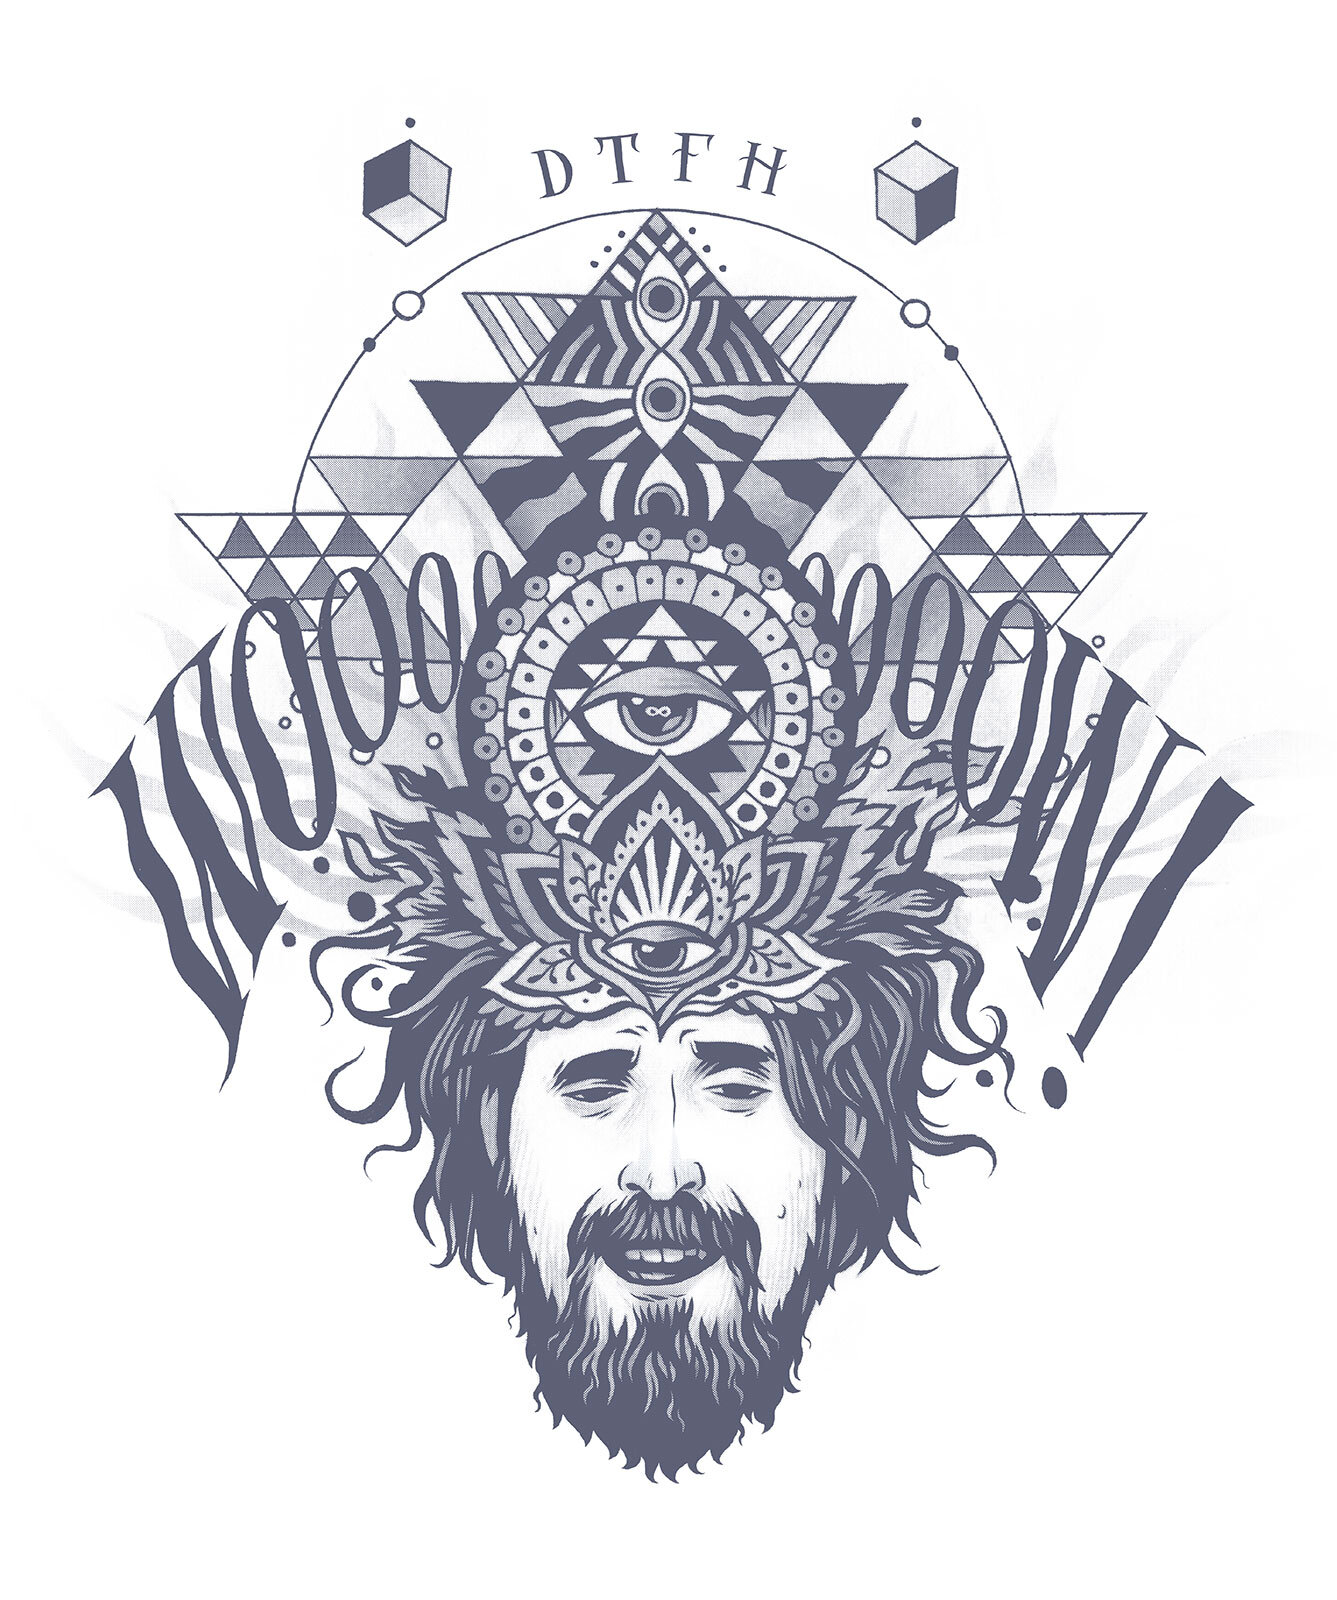 T-shirt illustration for  The Duncan Trussell Family Hour